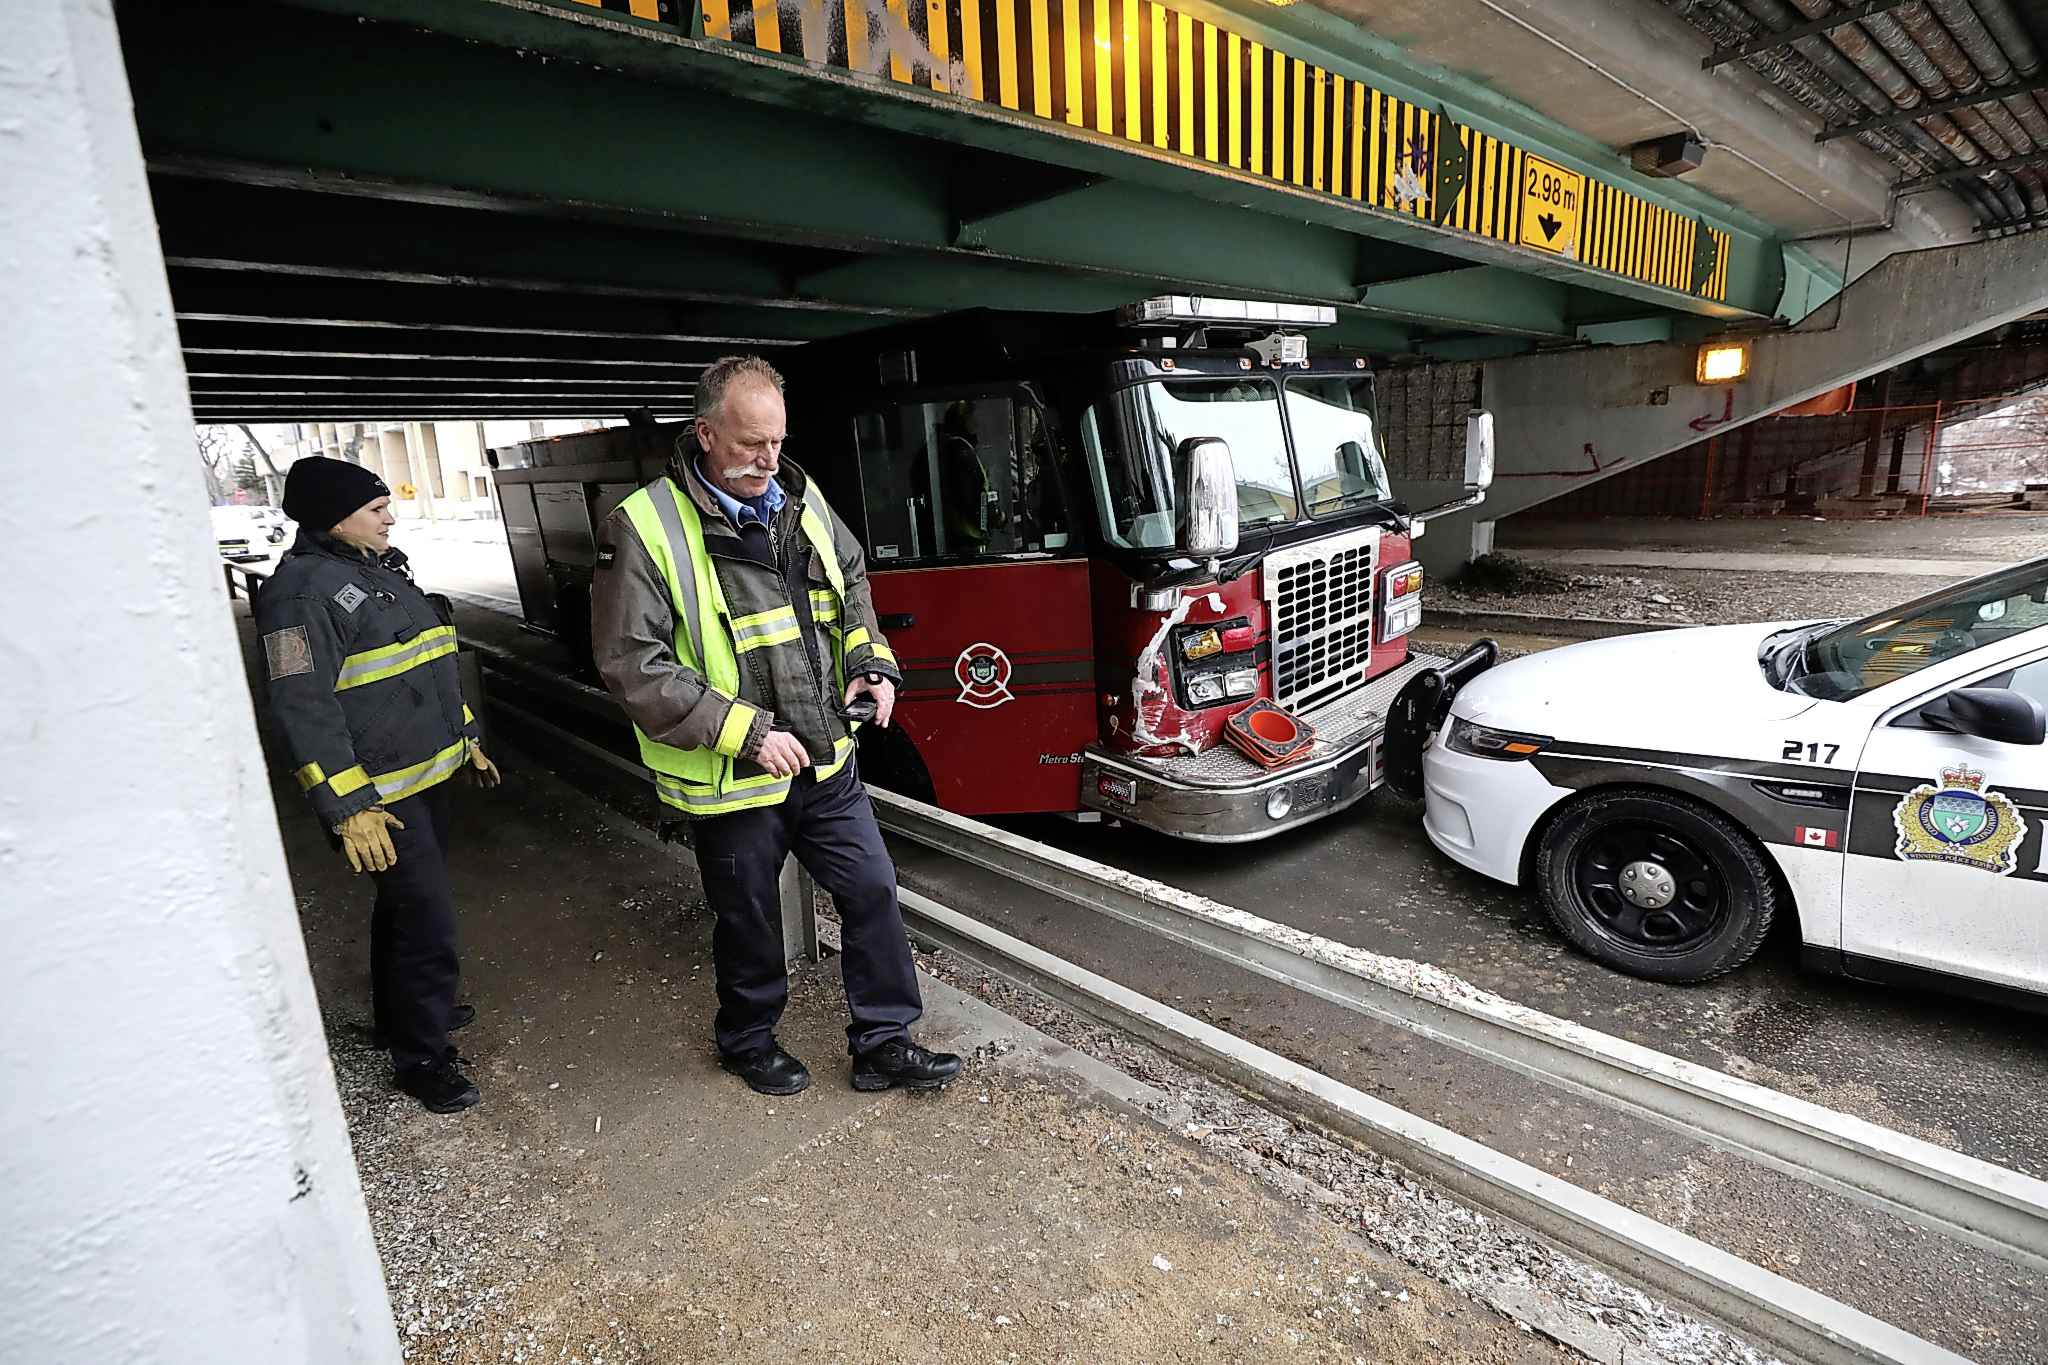 Winnipeg Police Officers and Fire Crews survey the damage on a stolen fire truck that was stopped by a police vehicle under the Donald Street Bridge on Assiniboine Ave., Friday.